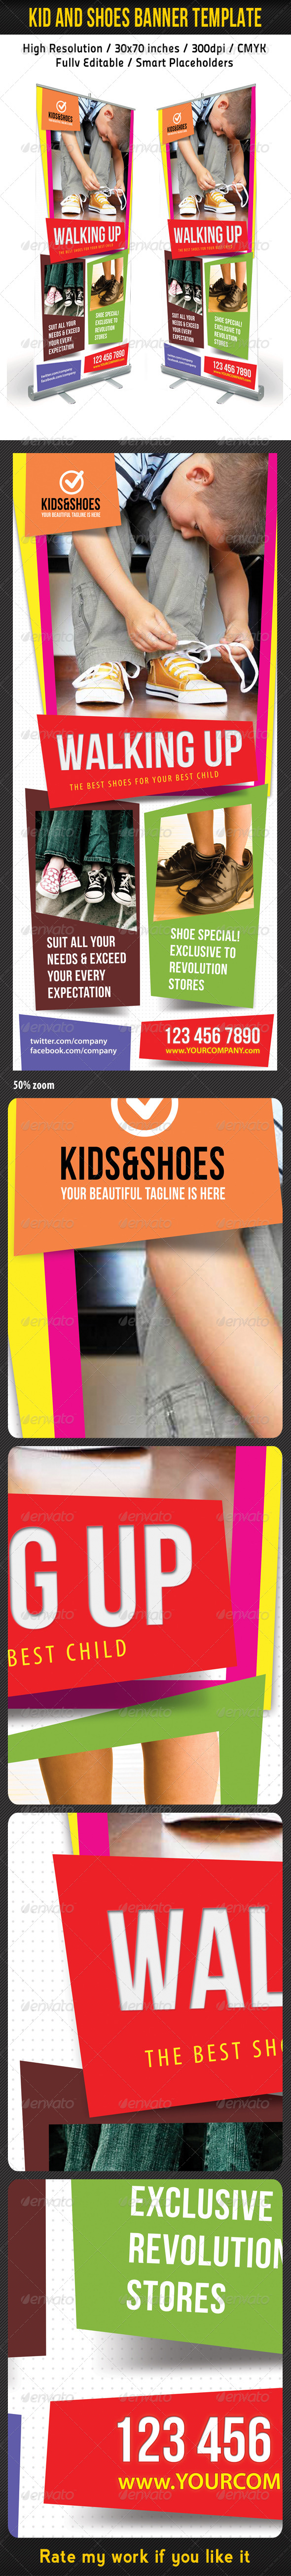 GraphicRiver Kid And Shoes Banner Template 5474585